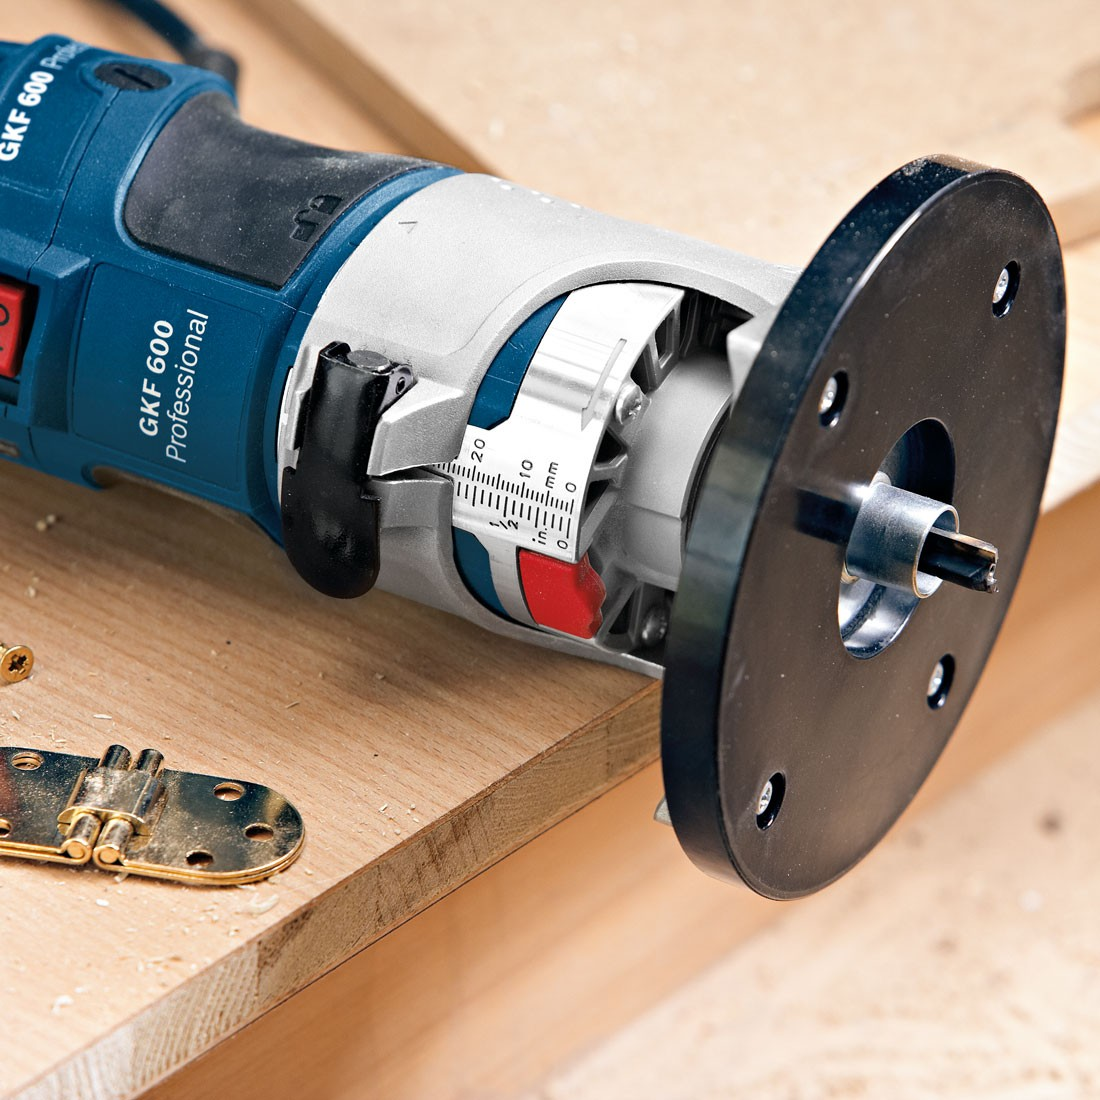 Bosch gkf 600 14 palm routerlaminate trimmer kit inc extra bases bosch greentooth Gallery